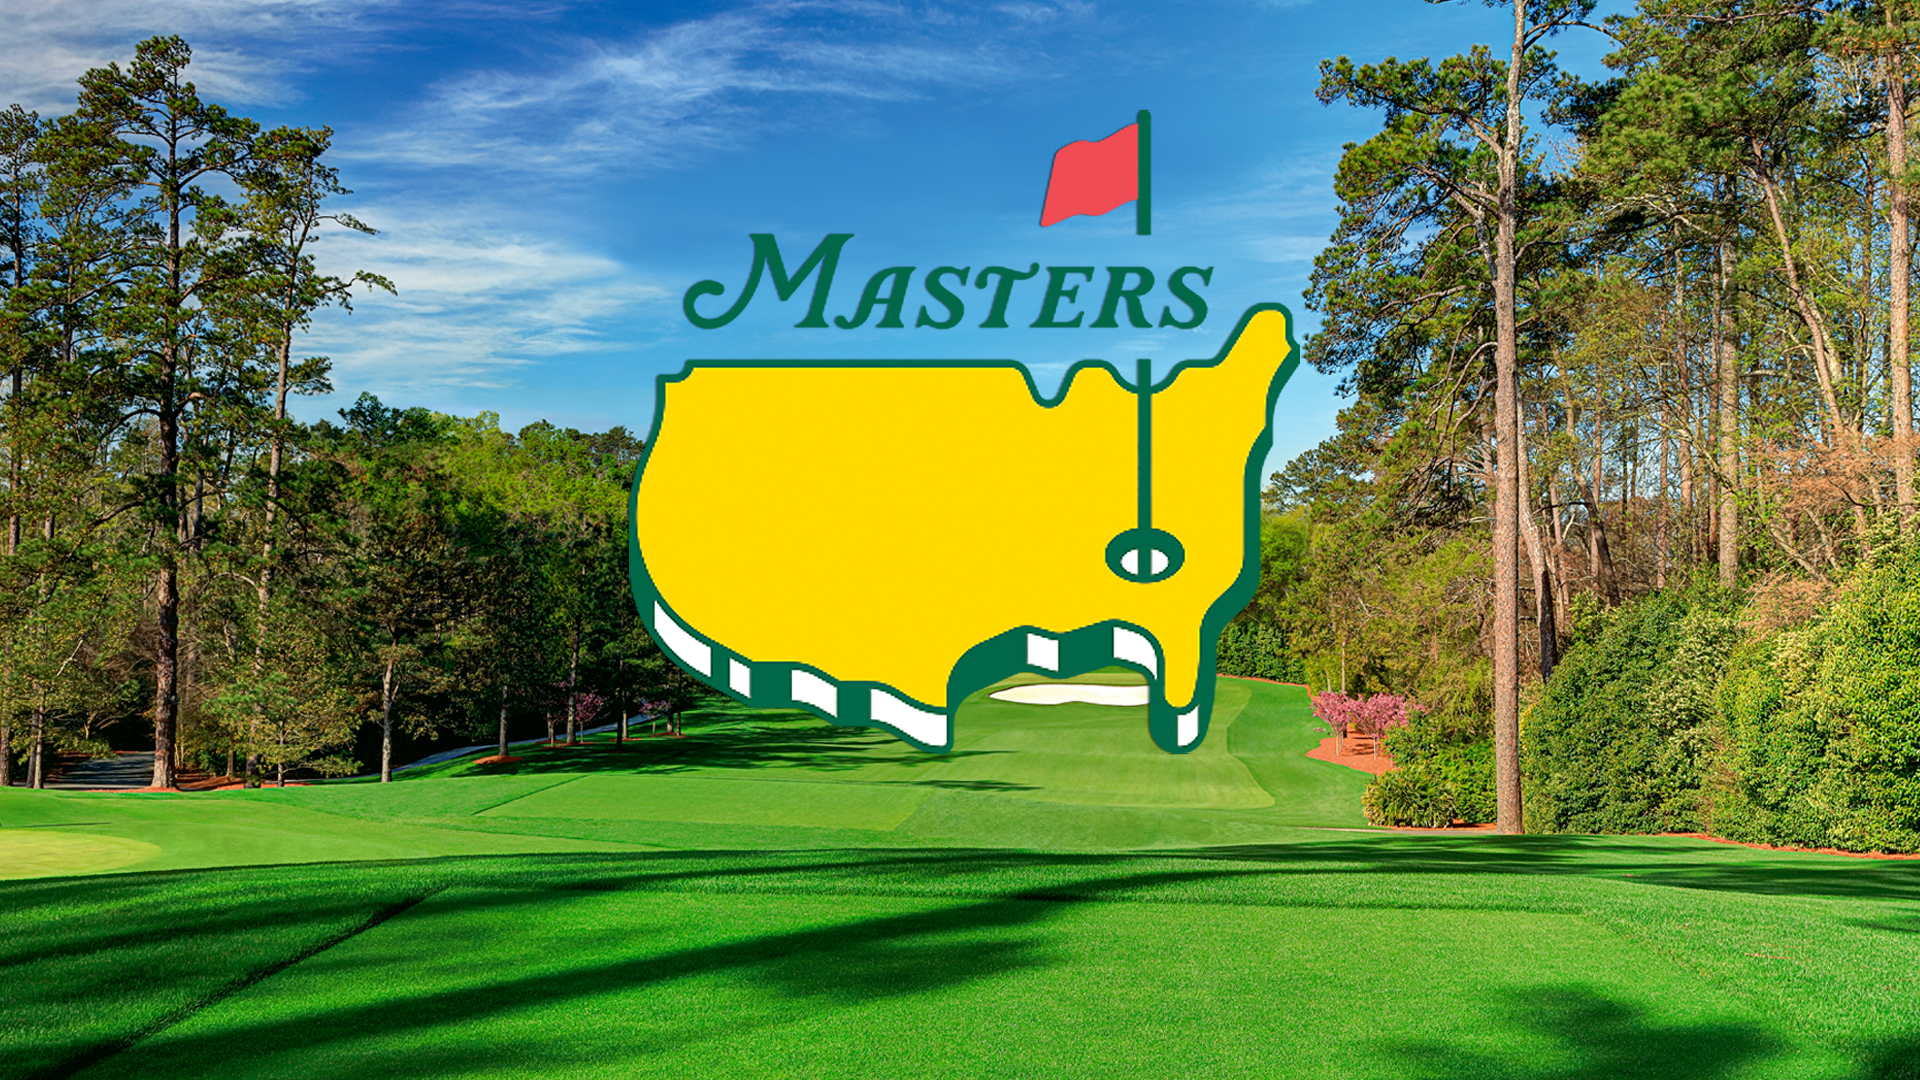 Updated Covid Protocols For Masters 2021 Announced Wsav Tv